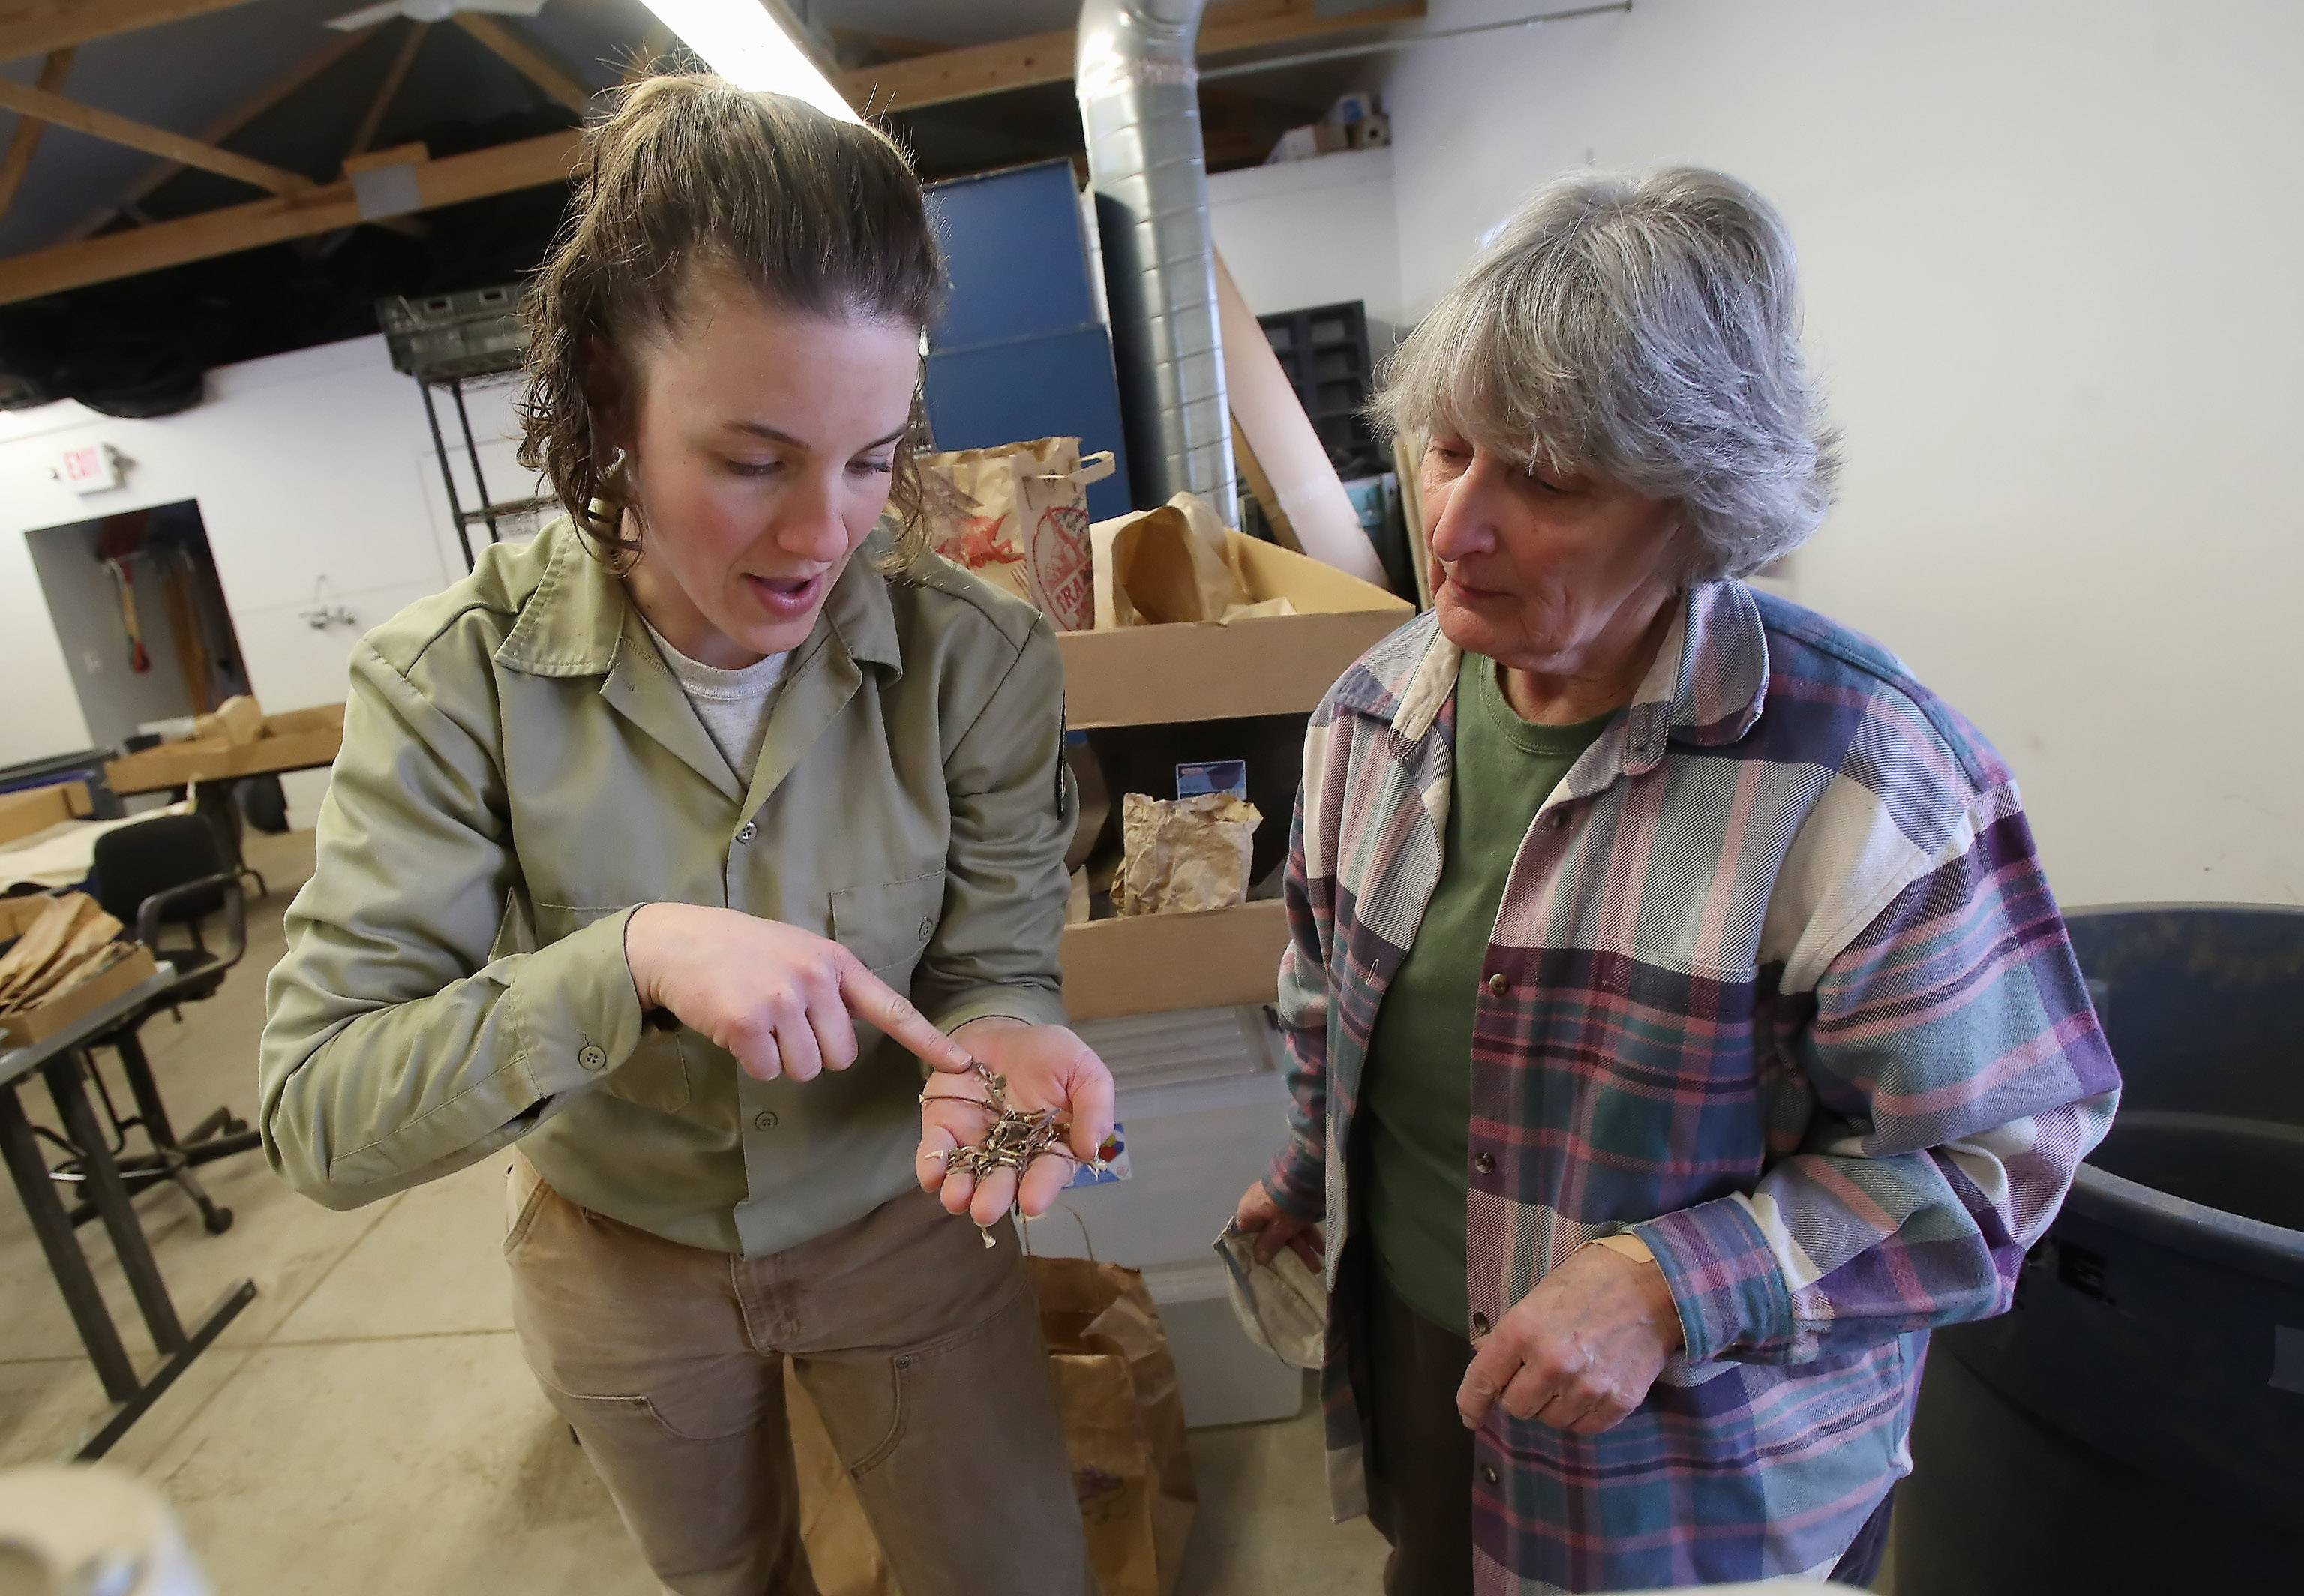 Lake County Forest Preserve nursery coordinator Kelly Schultz, left, shows volunteer Carol Hegner of Grayslake how to find the seeds in the Native Seed Nursery at Rollins Savanna in Grayslake Thursday.